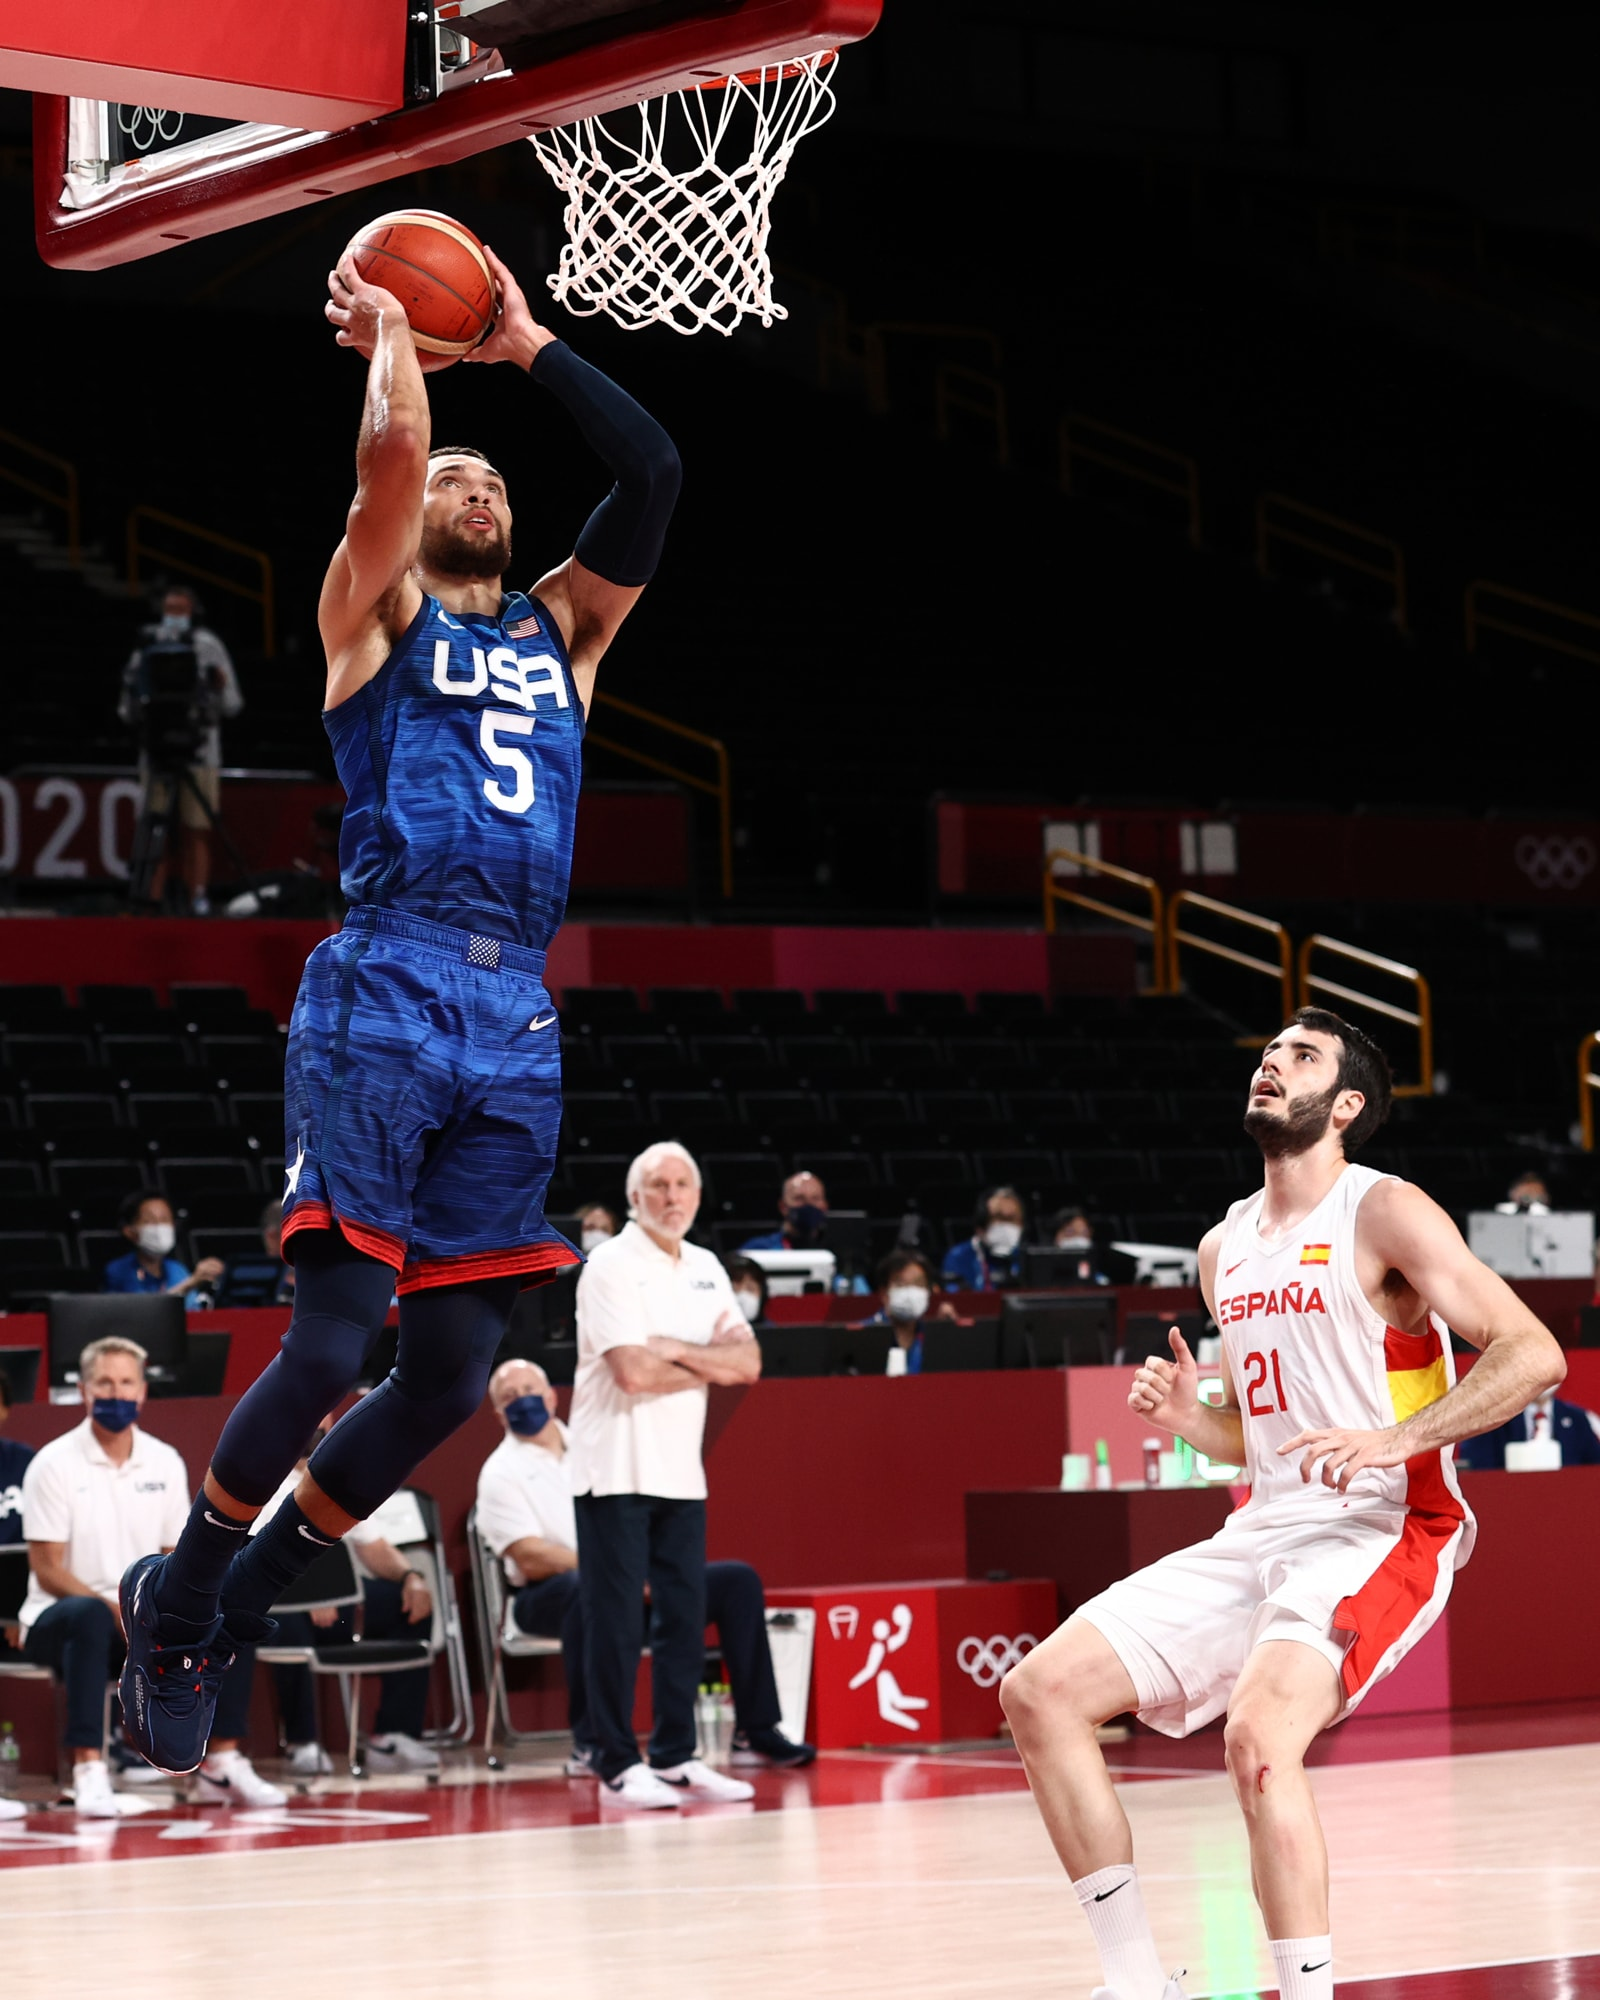 Zach LaVine skies for a dunk as Spain's Alex Abrines looks on.